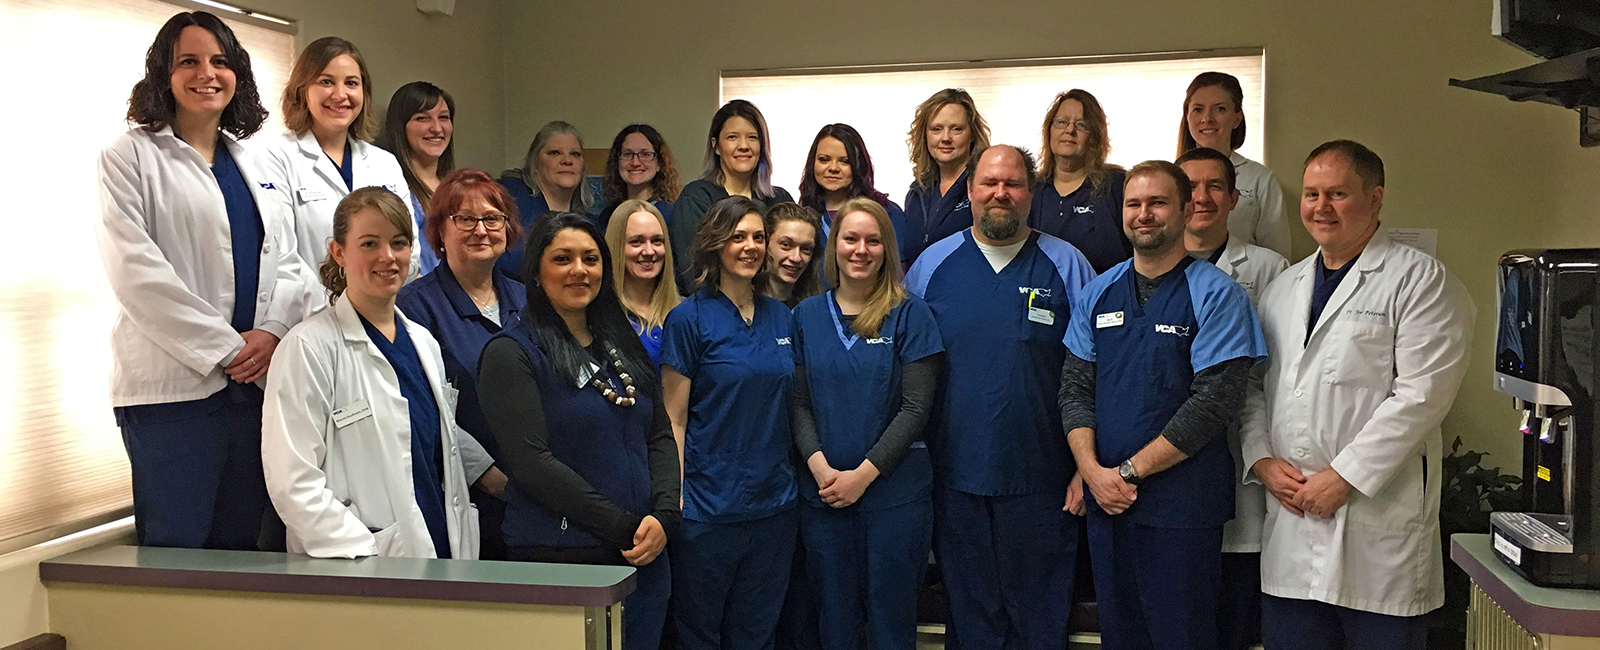 Homepage Team Picture of VCA North Division Animal Medical Center